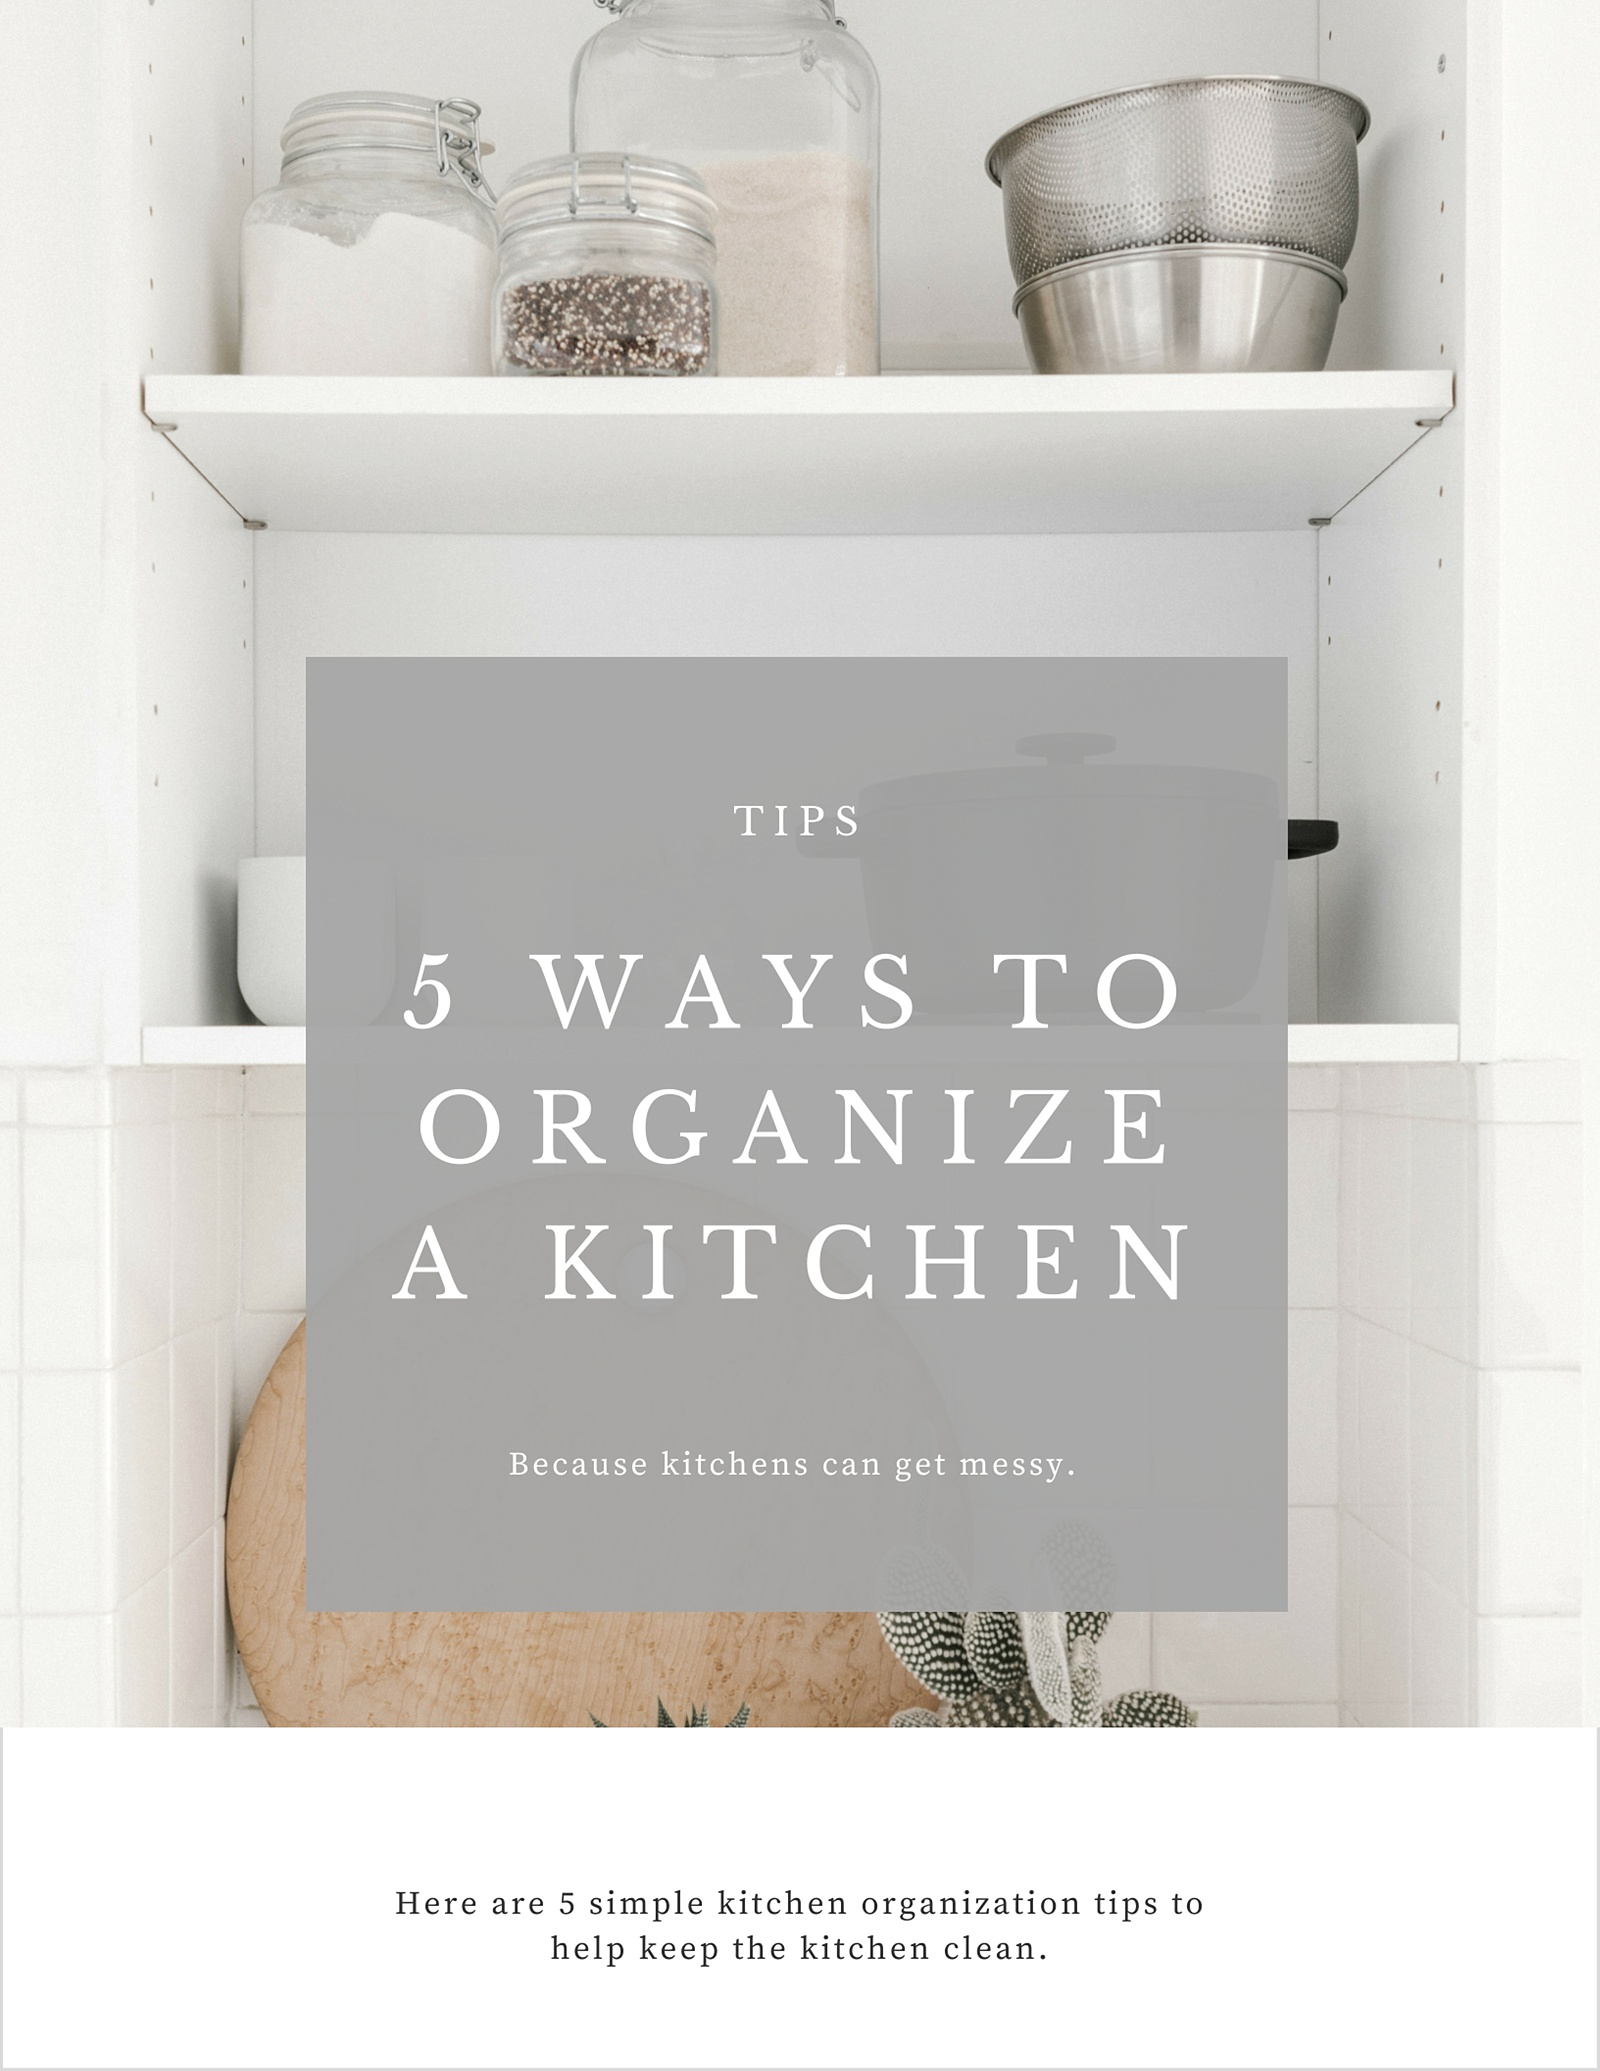 5 Simple Kitchen Organization Tips